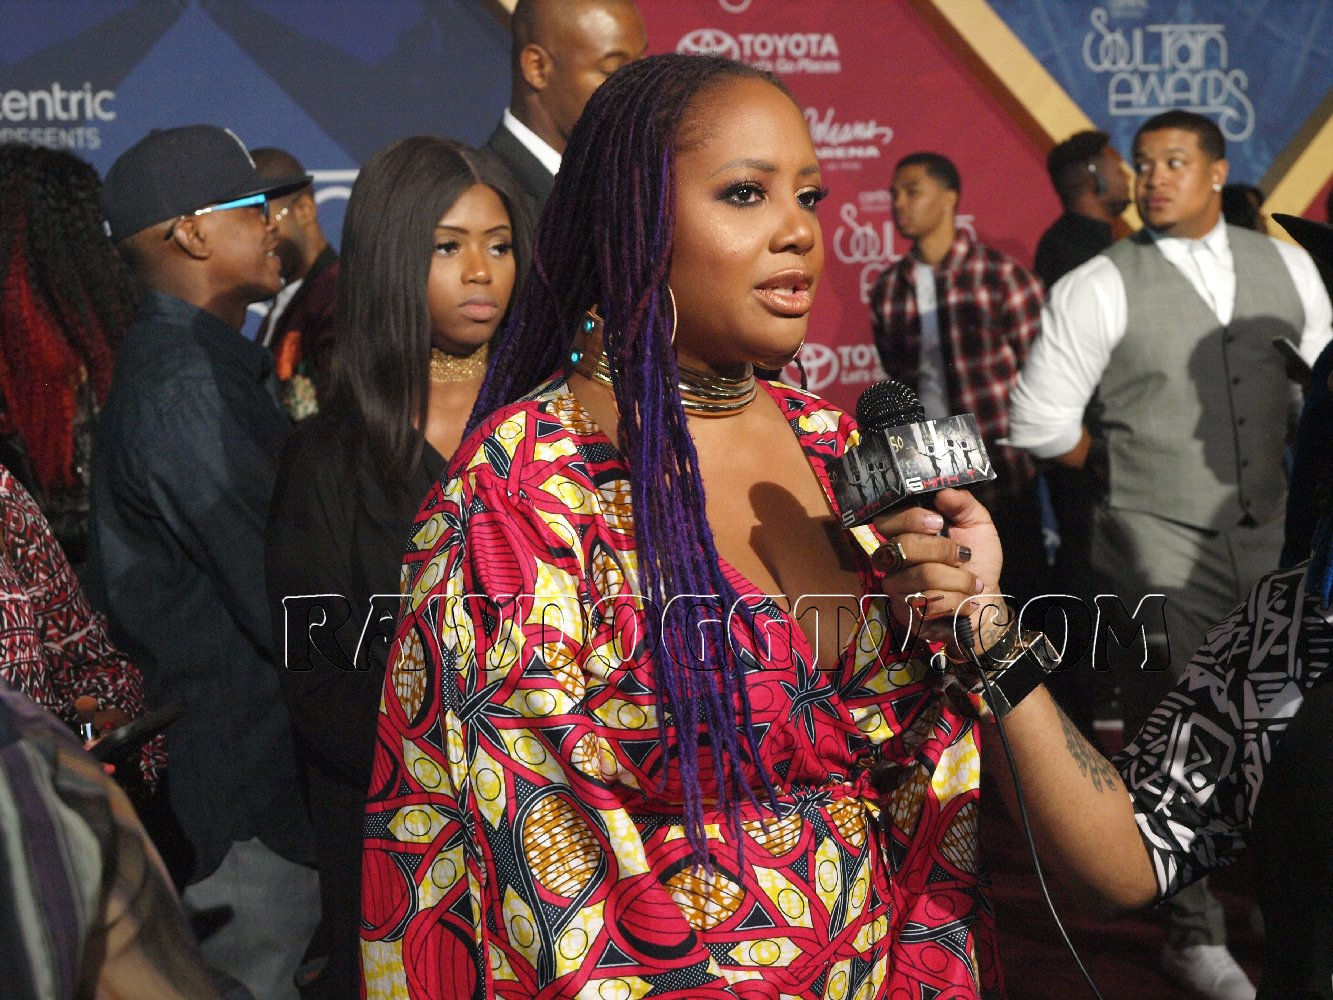 soul-train-music-awards-2016-photos-air-date-nov-27th-bet-centric-pr-mobilewire-305-490-2182-31